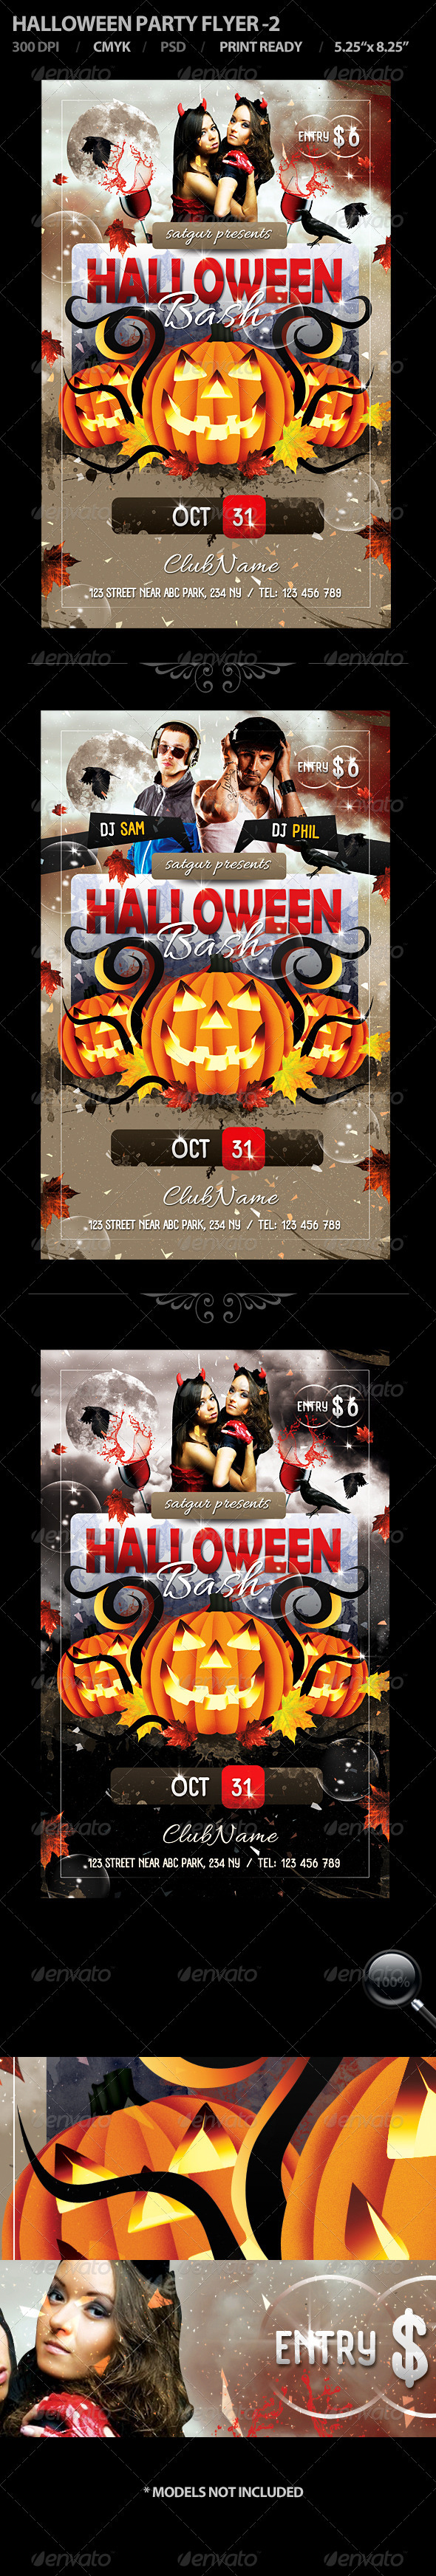 Halloween Party Flyer - 2 - Flyers Print Templates